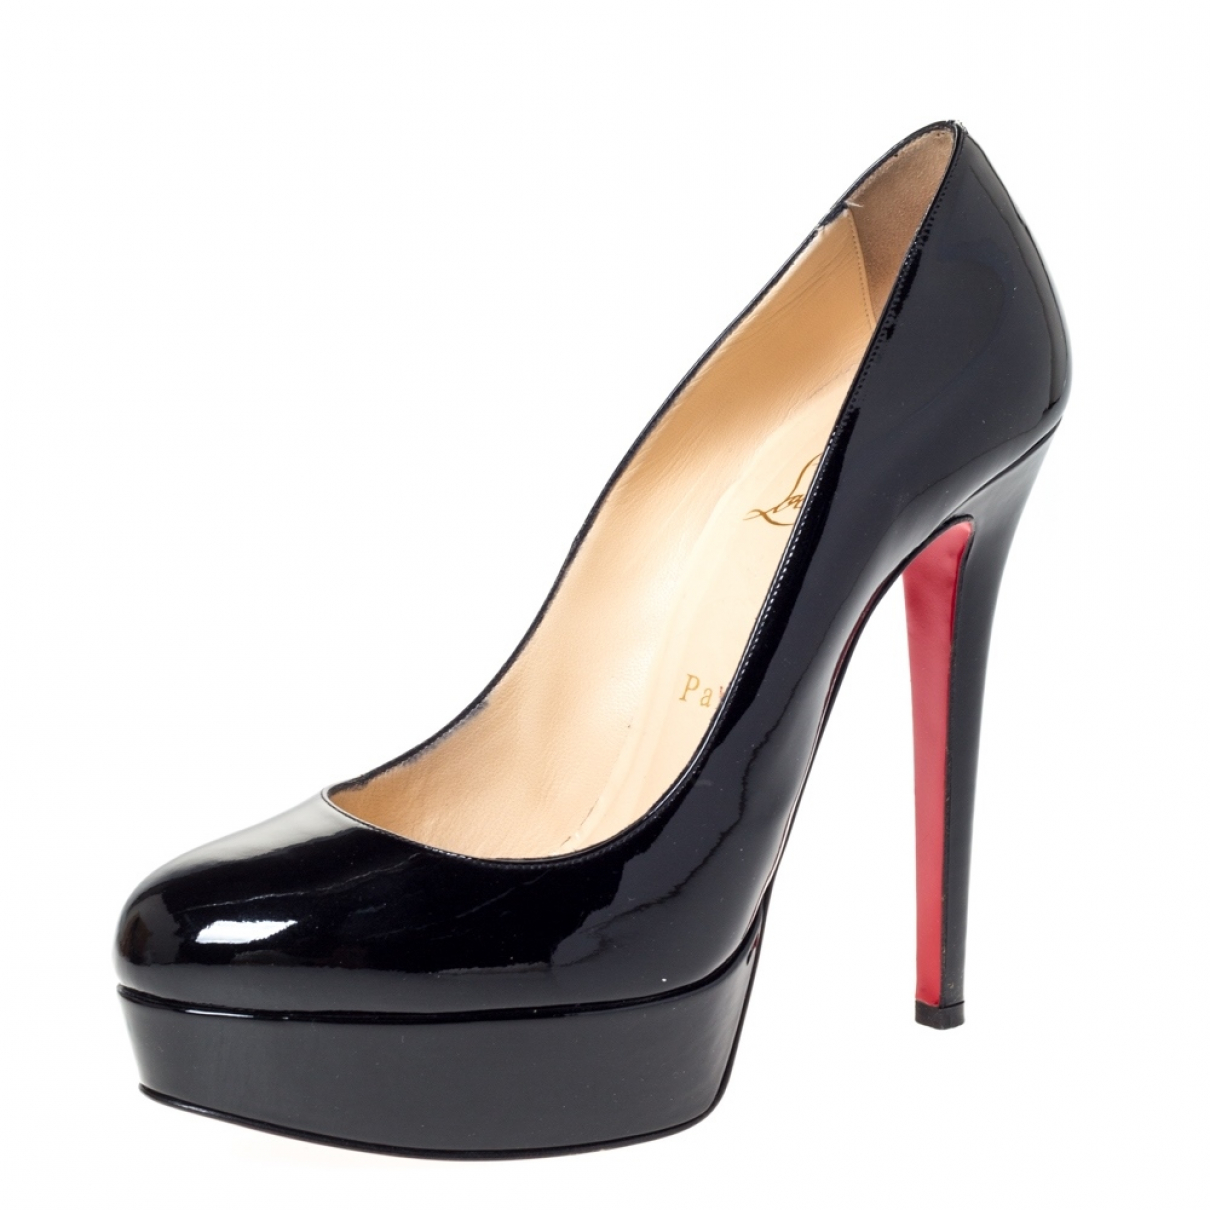 Christian Louboutin Bianca Black Patent leather Heels for Women 7 US